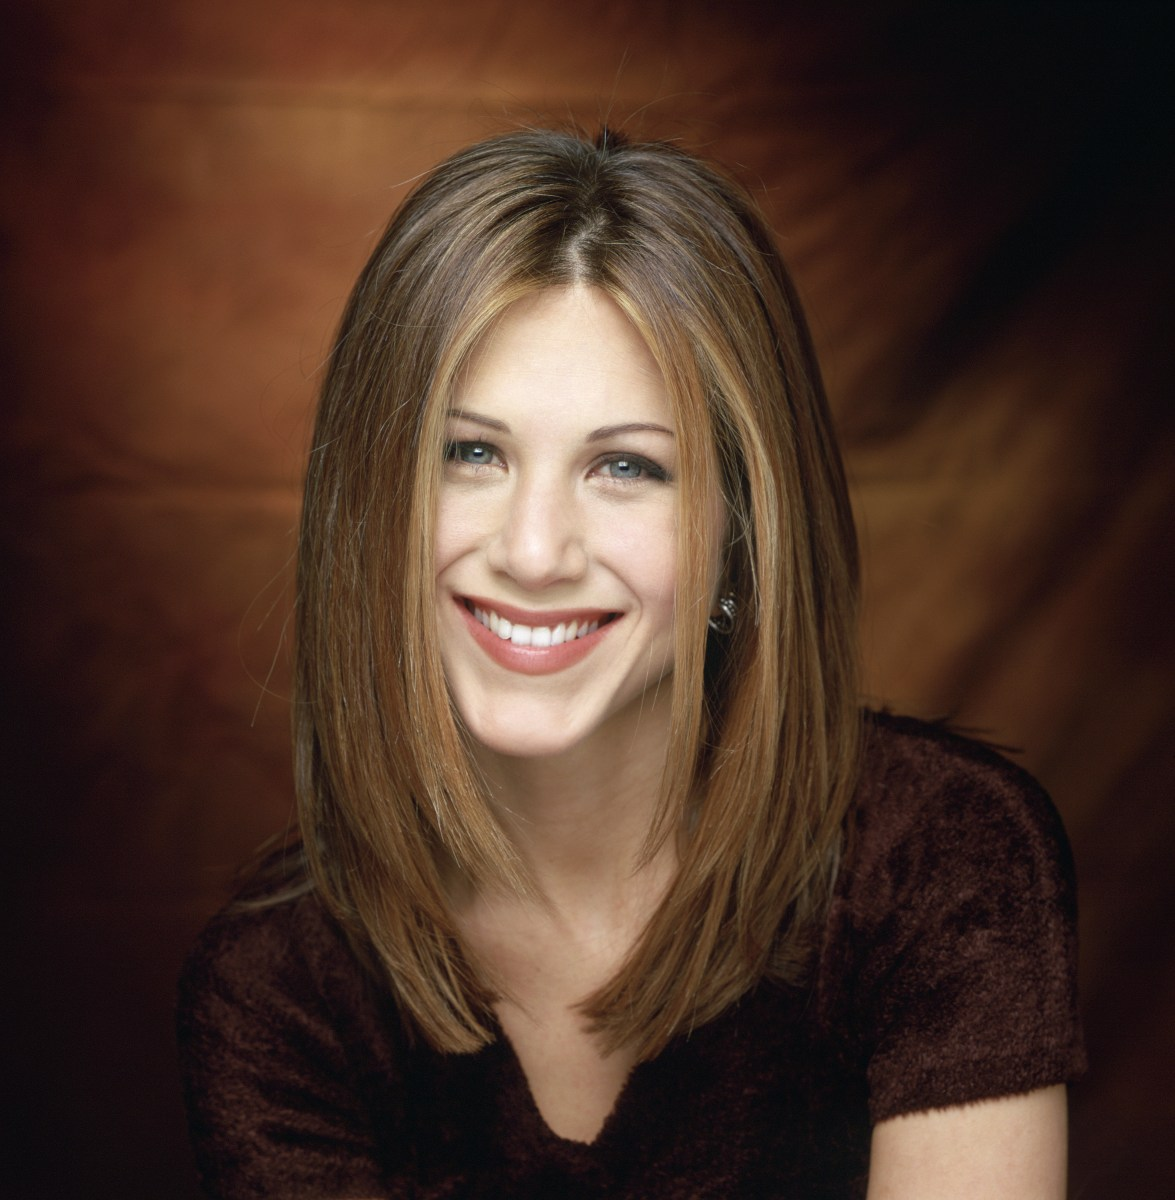 Jennifer Aniston's hair: From 'The Rachel' to her